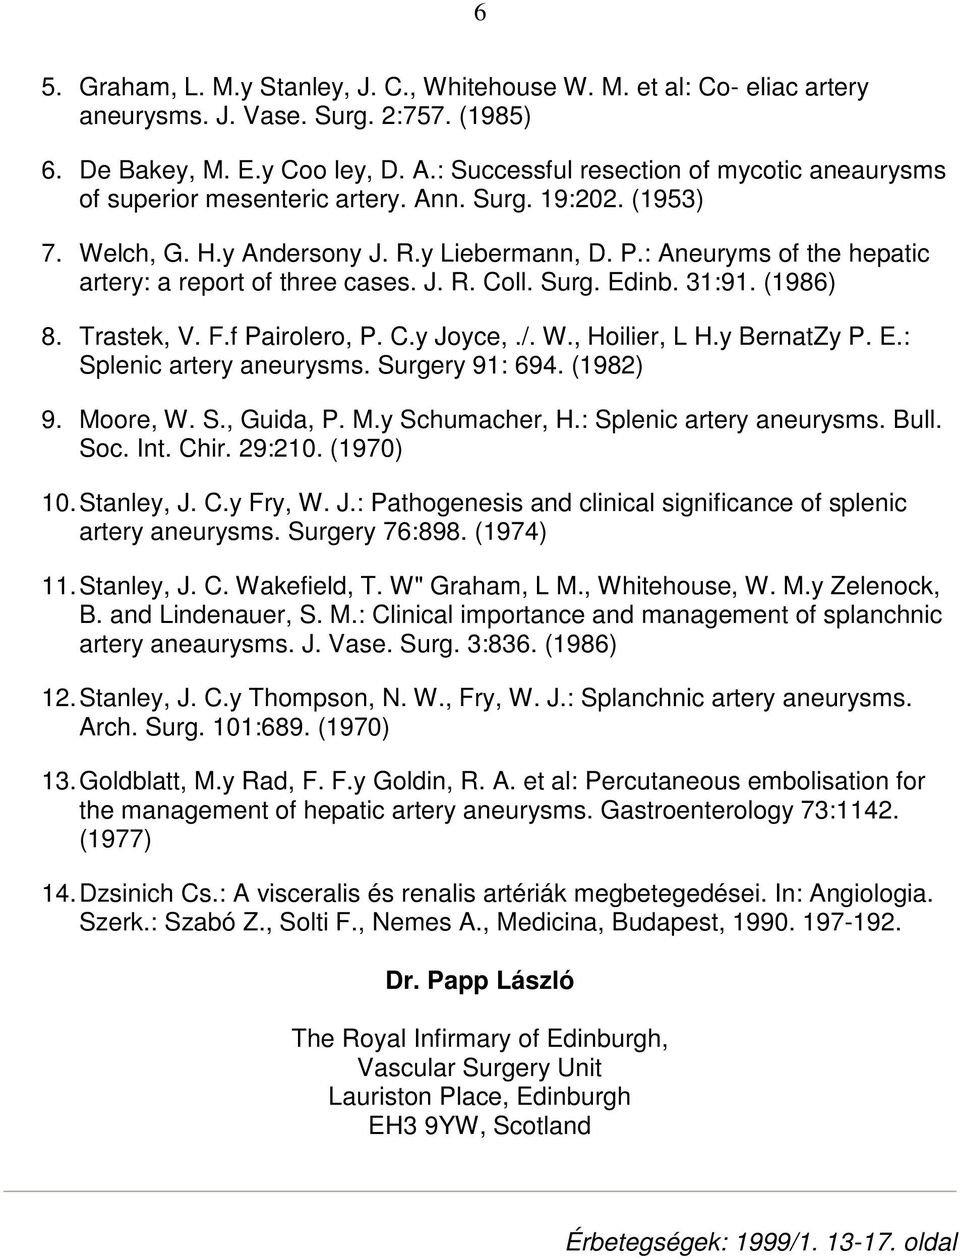 : Aneuryms of the hepatic artery: a report of three cases. J. R. Coll. Surg. Edinb. 31:91. (1986) 8. Trastek, V. F.f Pairolero, P. C.y Joyce,./. W., Hoilier, L H.y BernatZy P. E.: Splenic artery aneurysms.